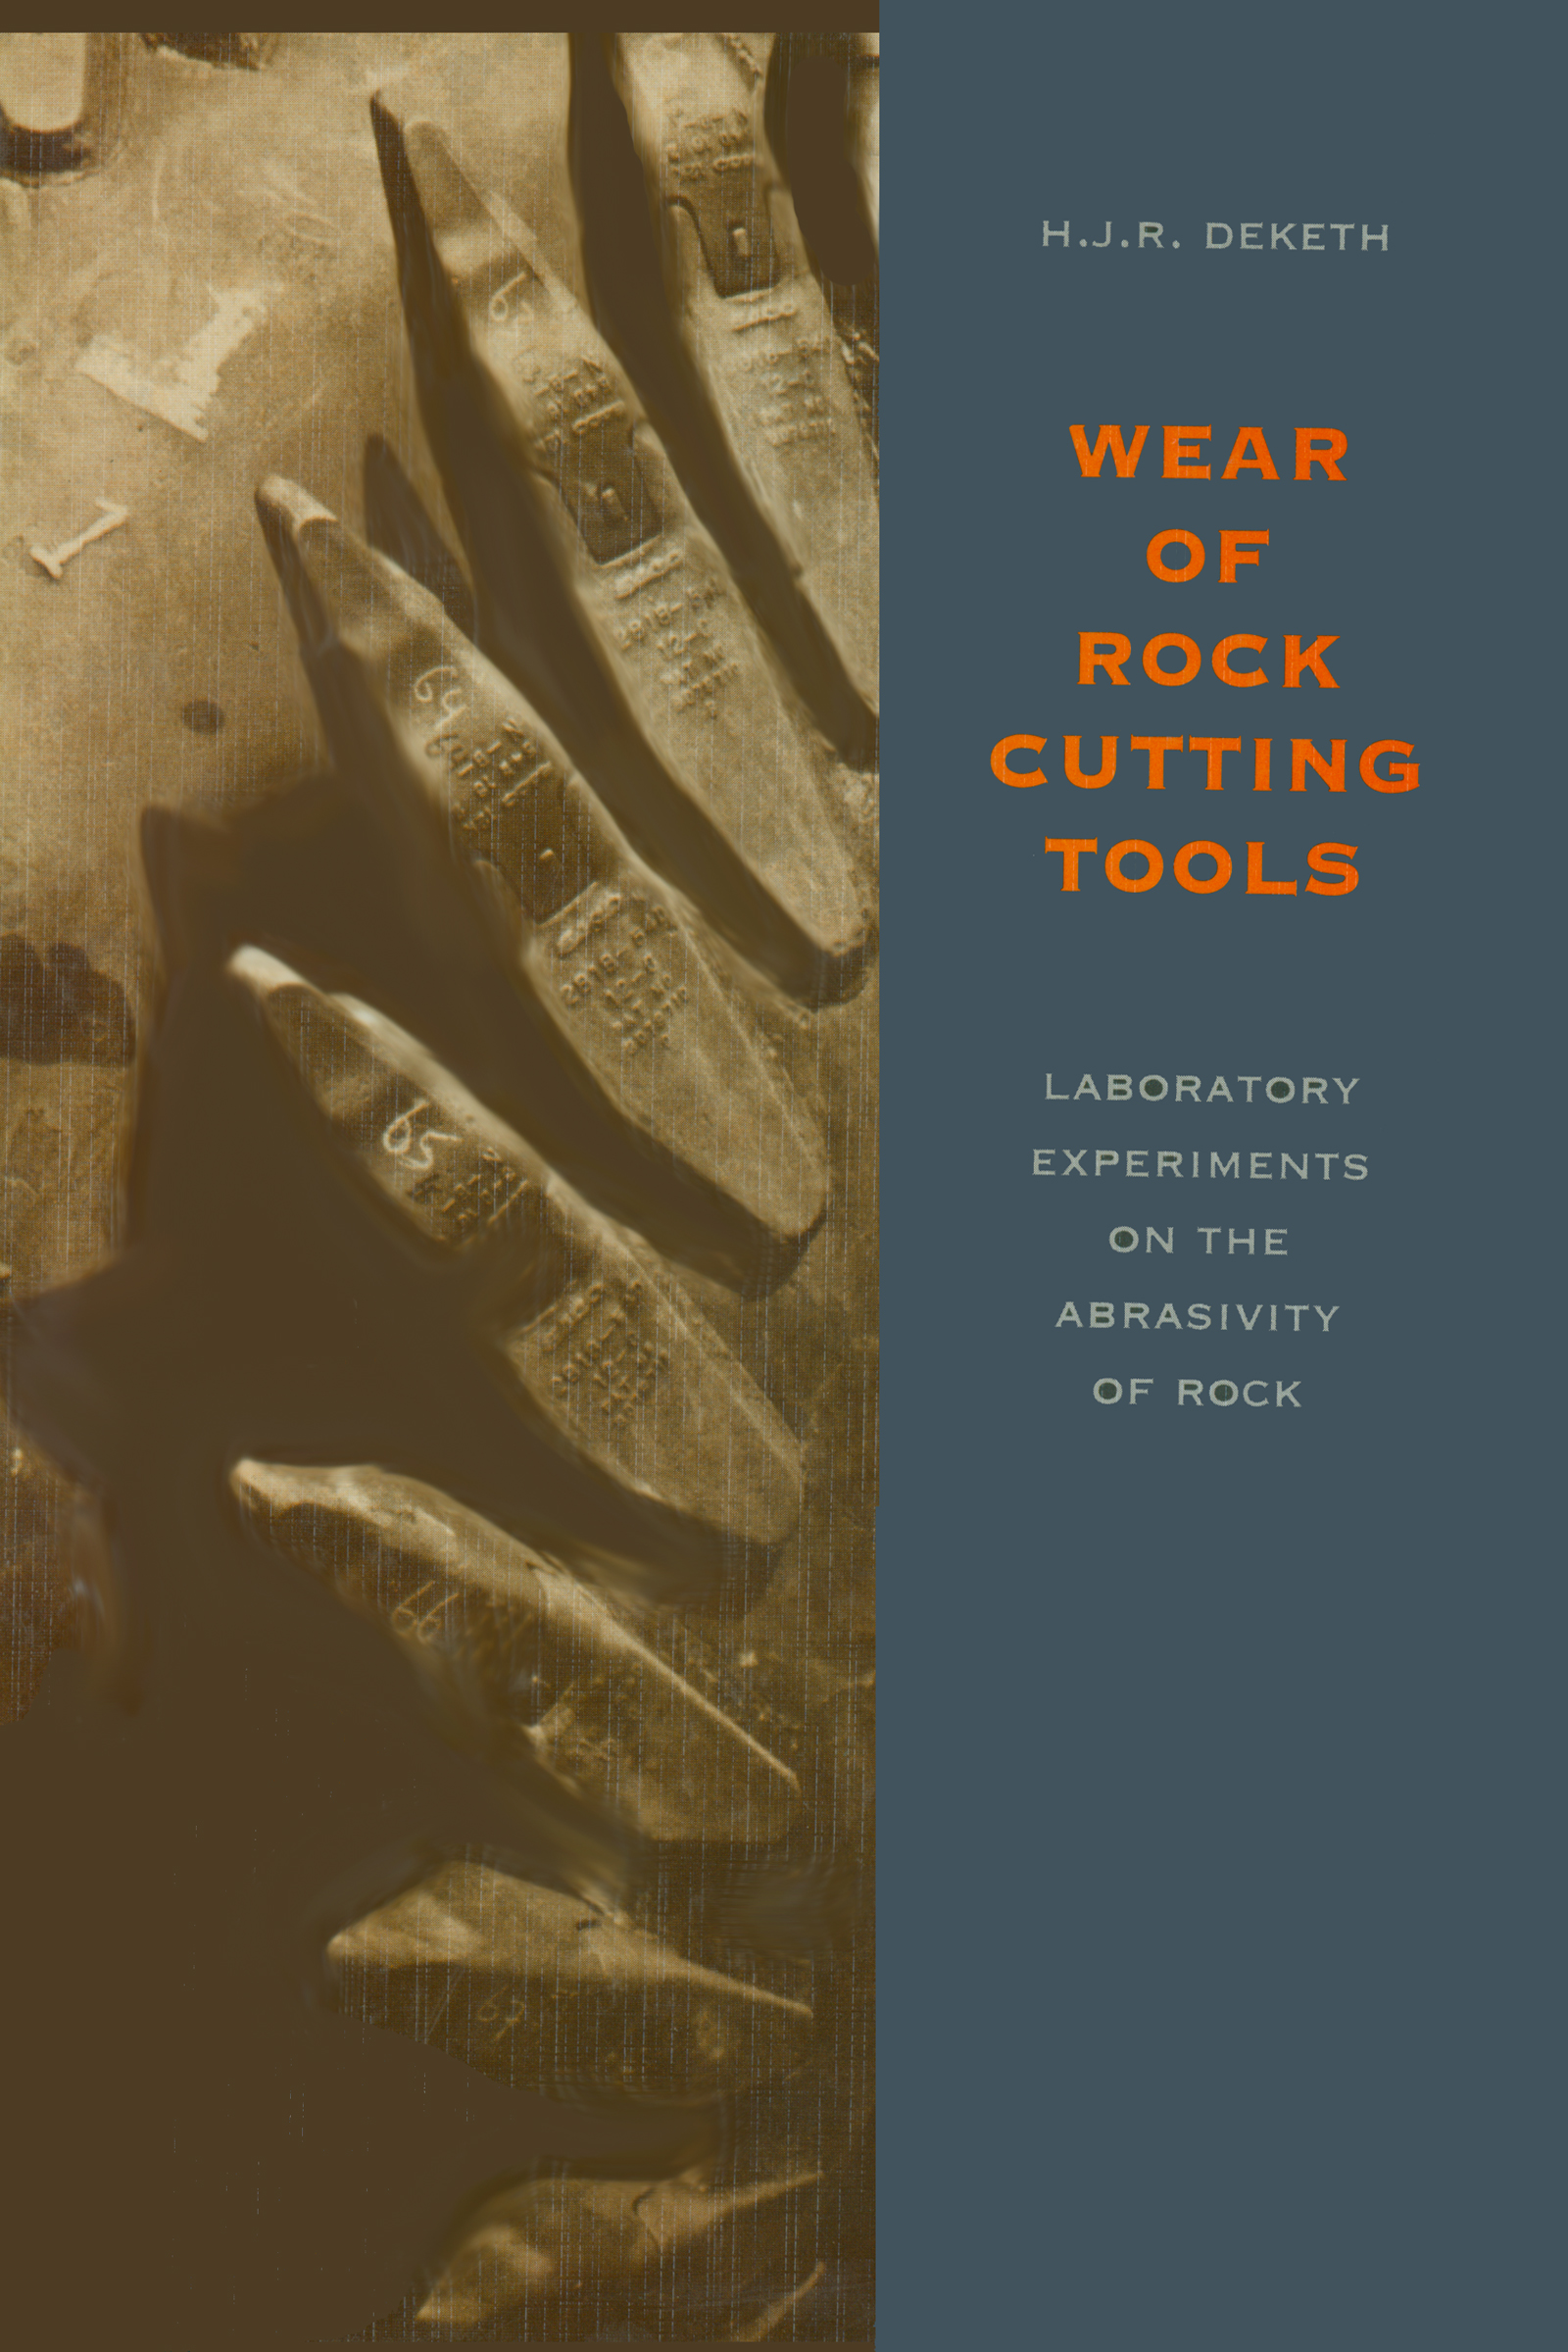 Possible wear mechanisms at the wear-flat of rock cutting tools